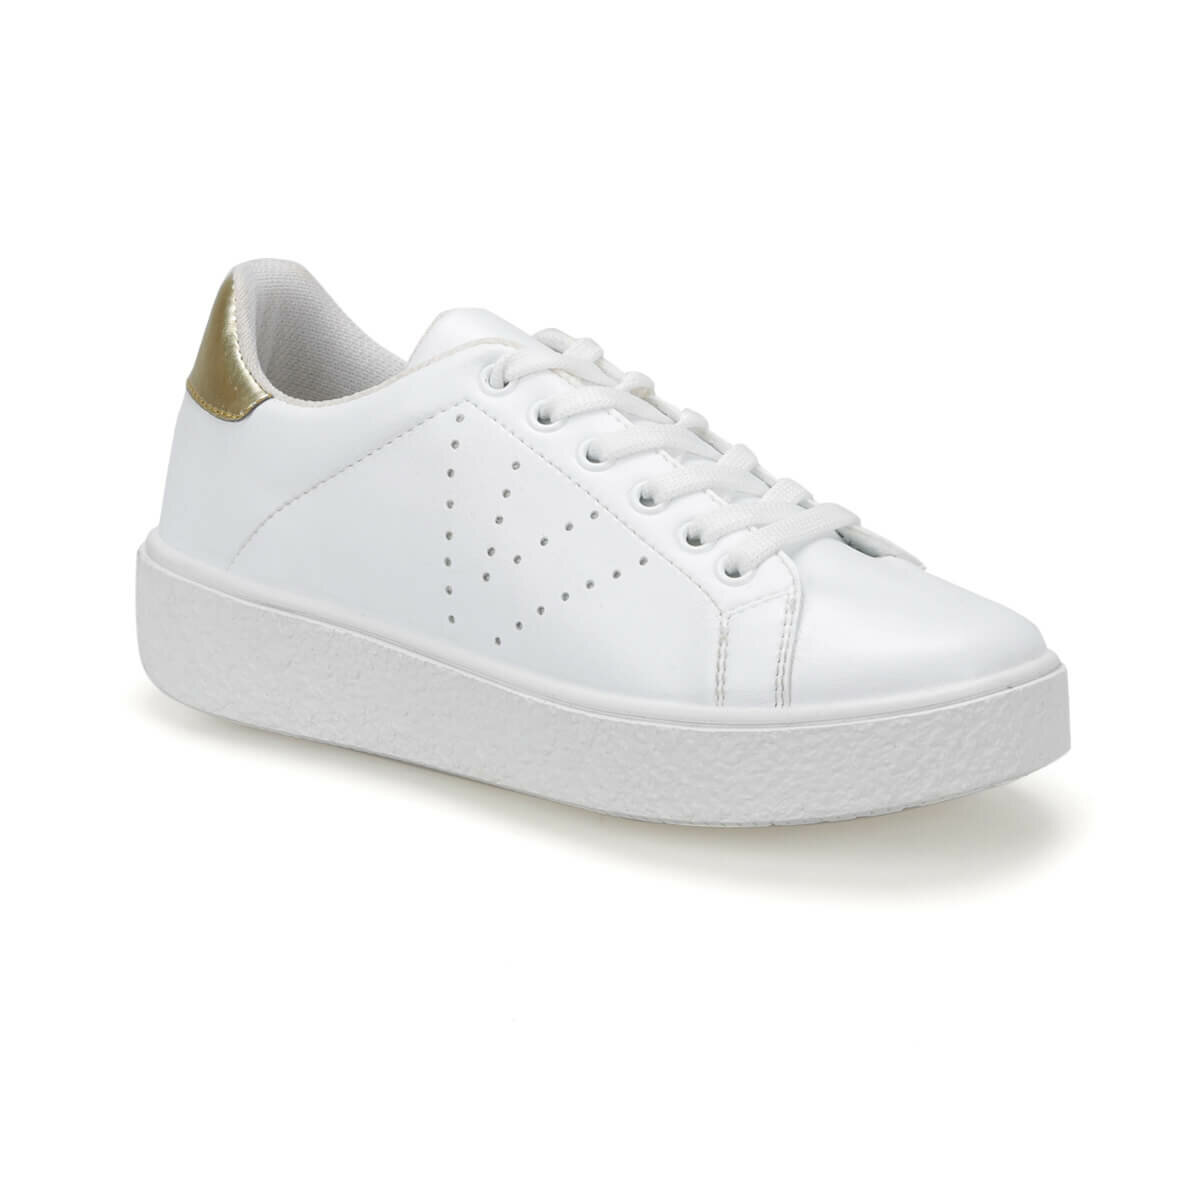 FLO CS19069 White Women 'S Sneaker Shoes Art Bella